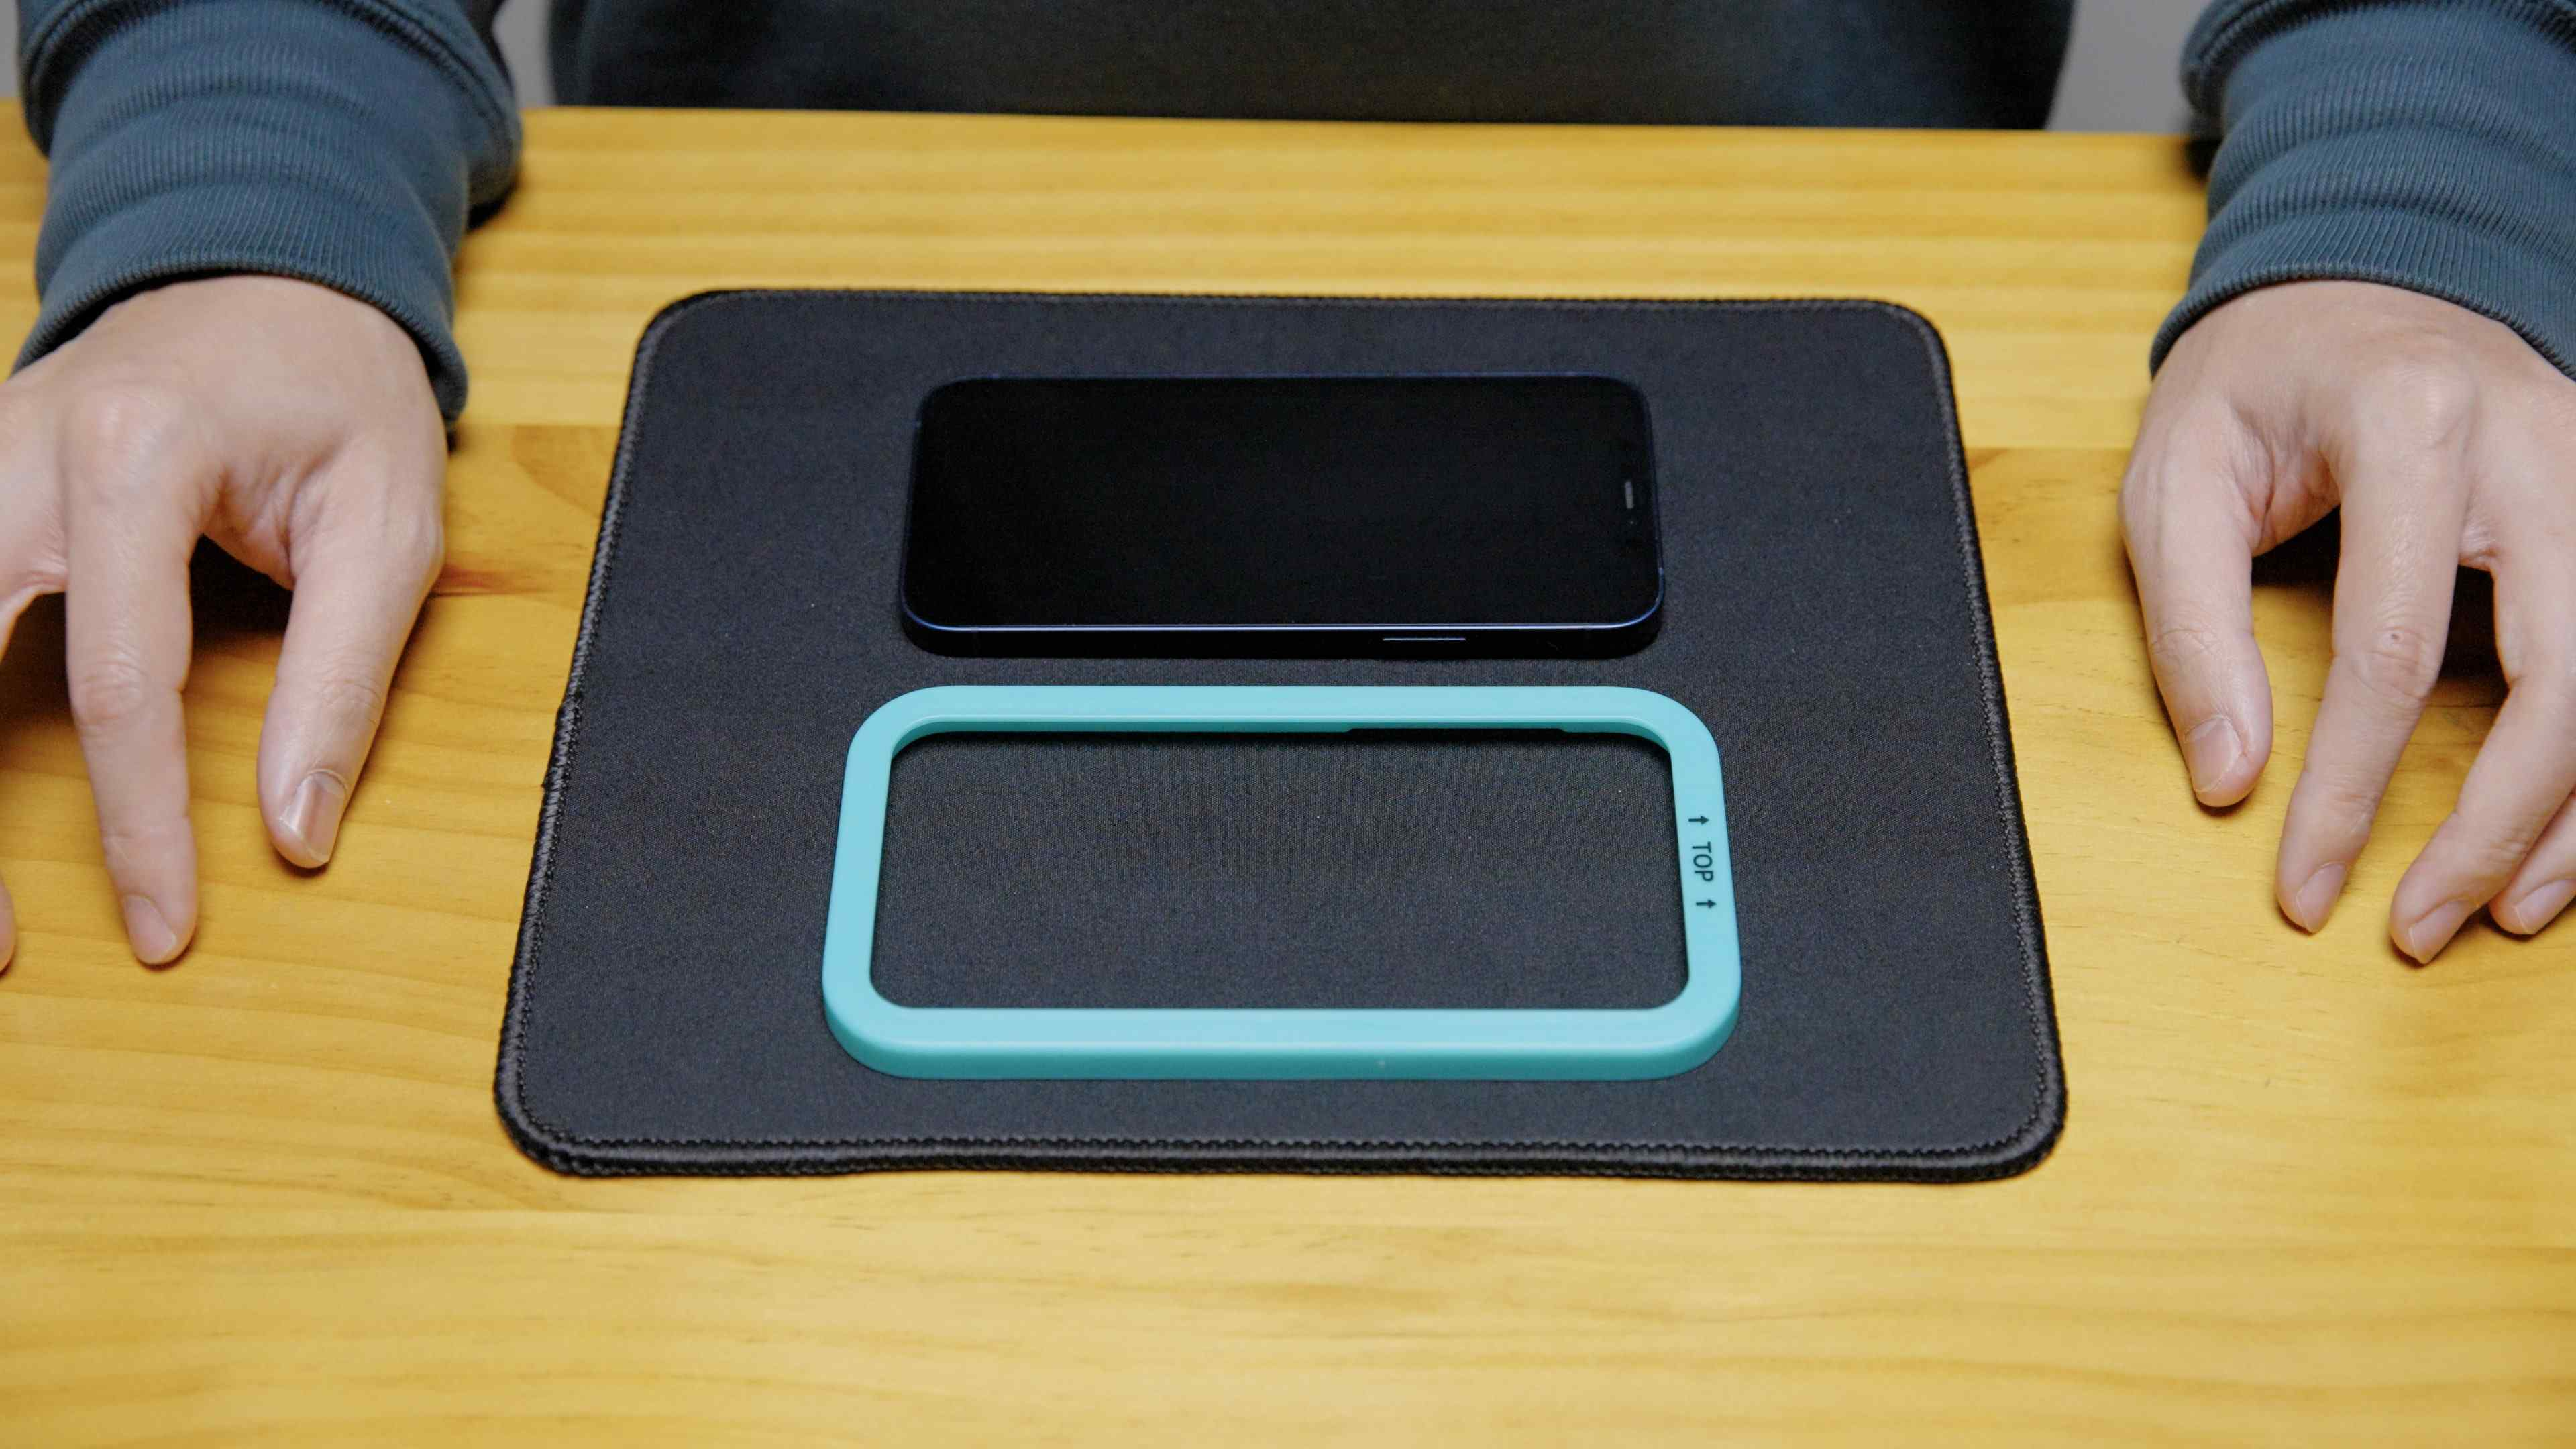 Screen Protector Installation Guide Step 3 : Frame Installation